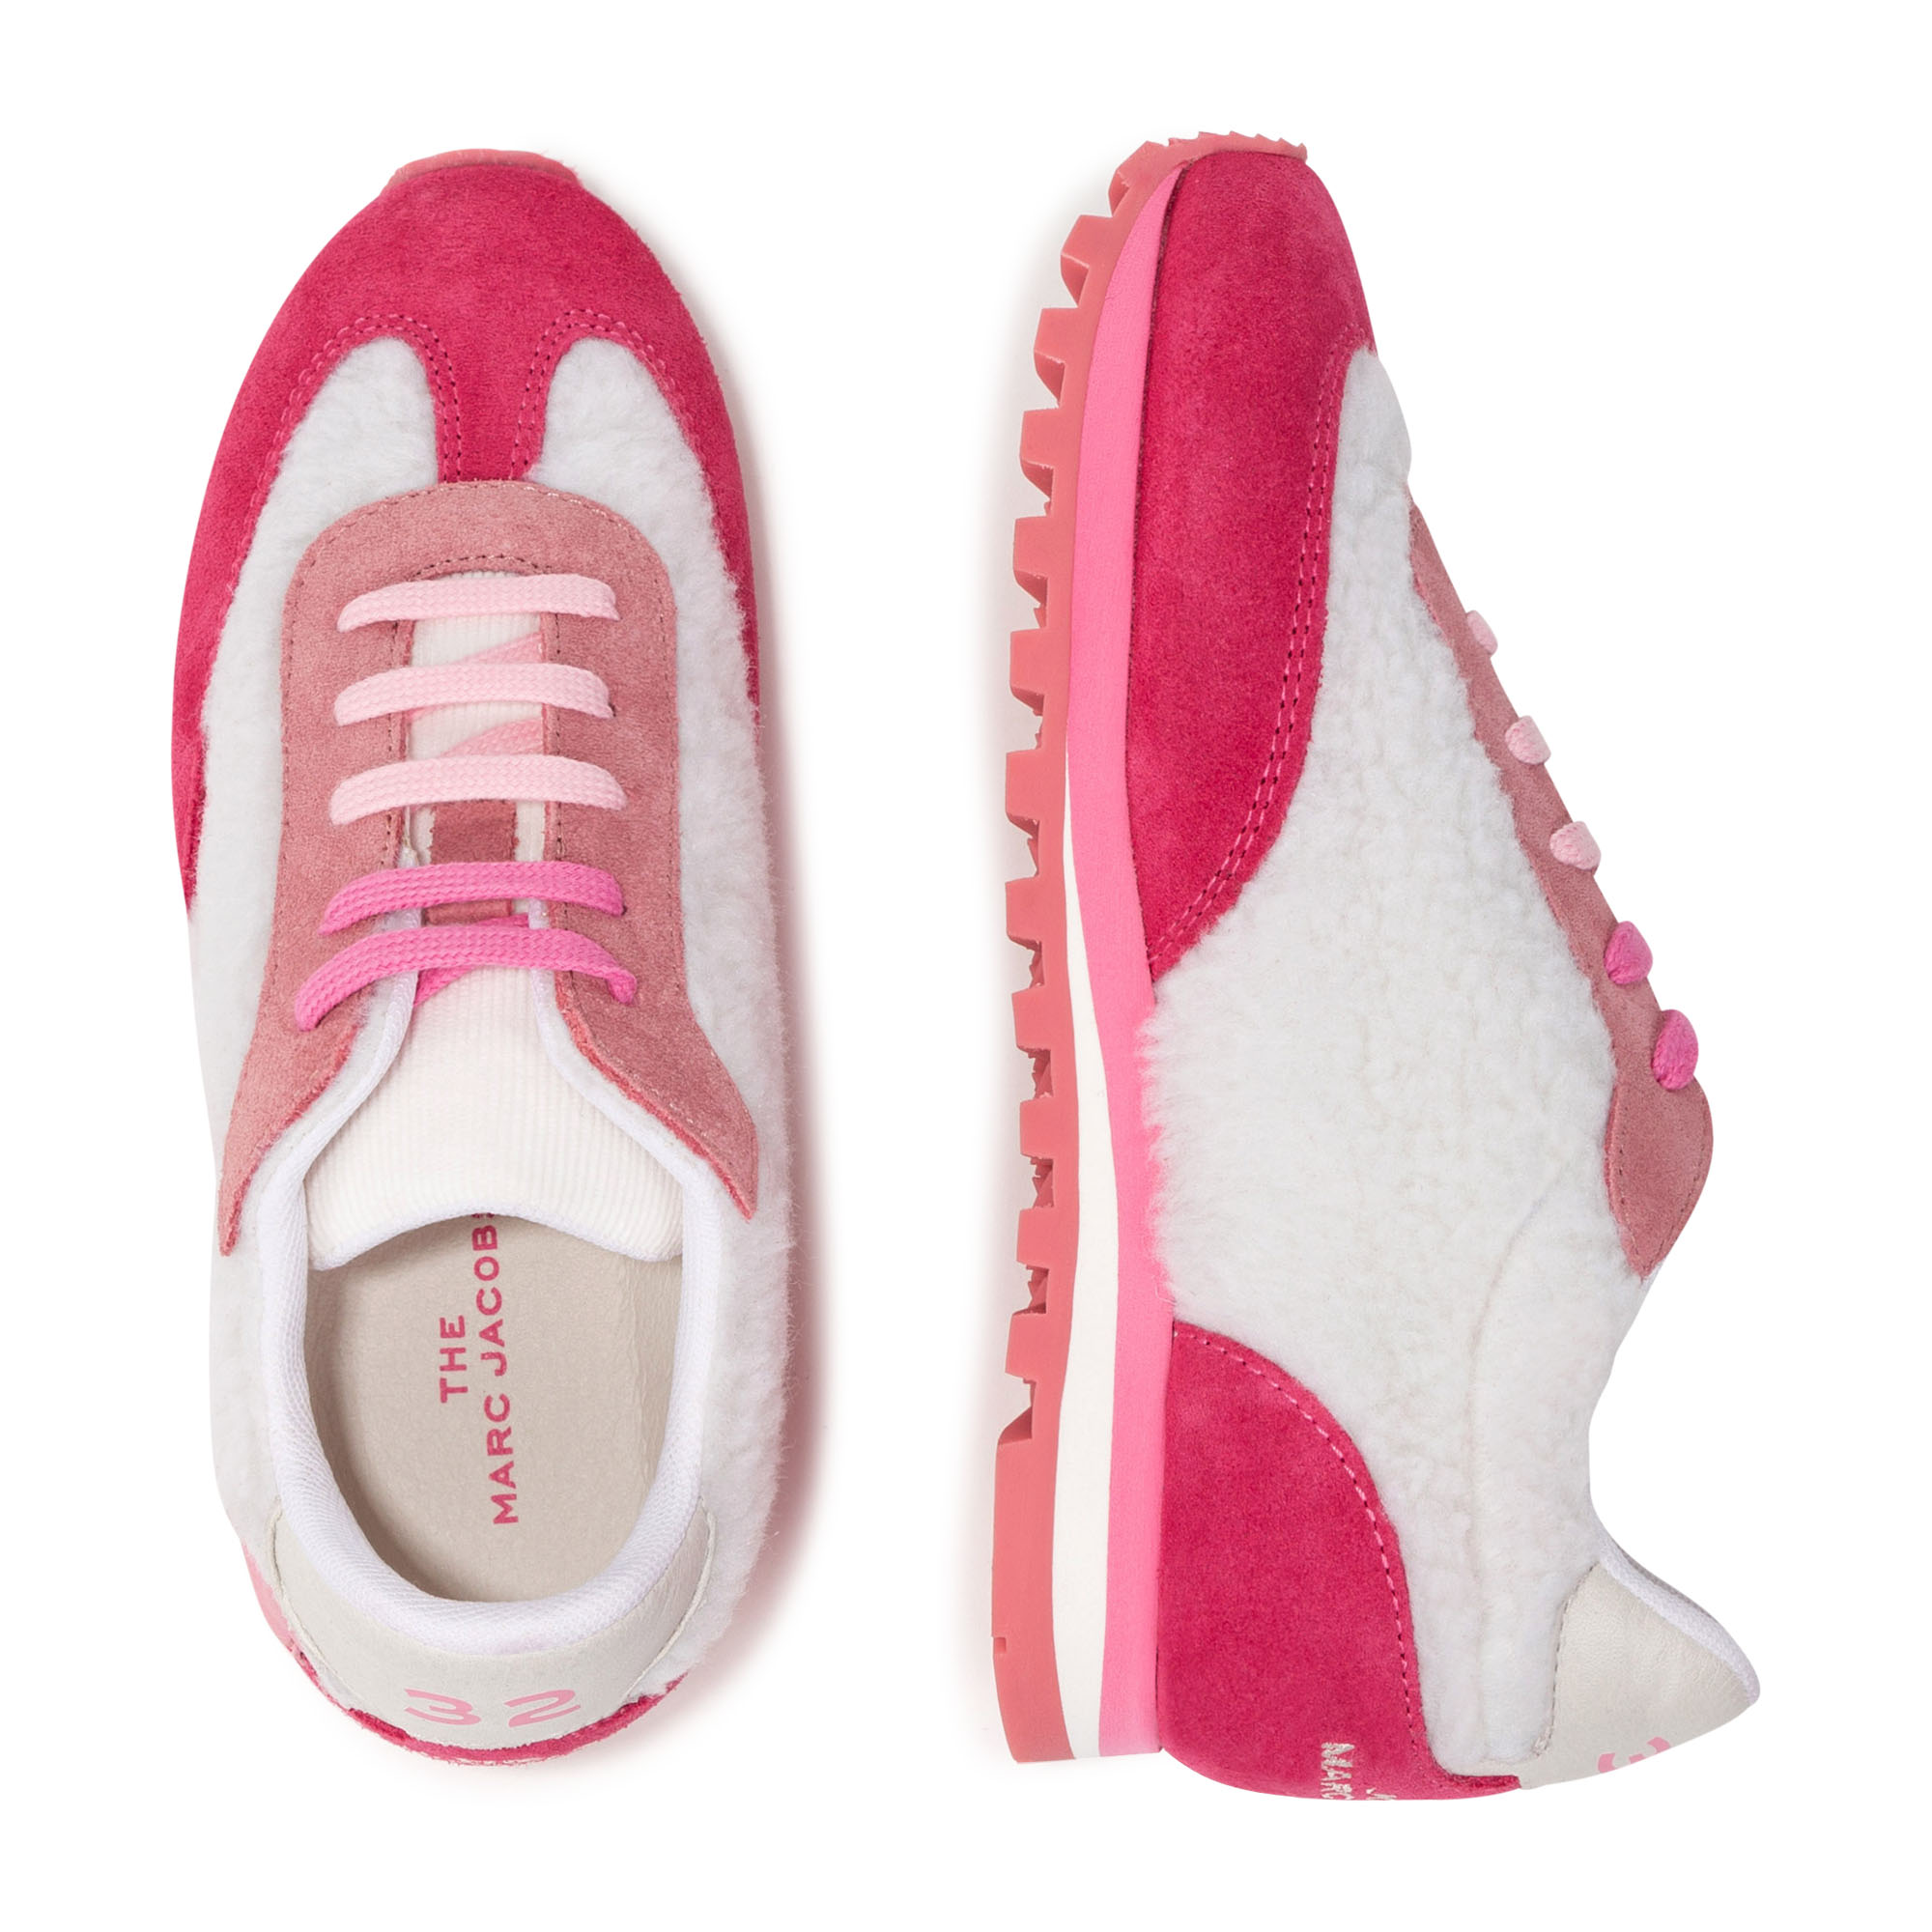 TRAINERS THE MARC JACOBS for GIRL